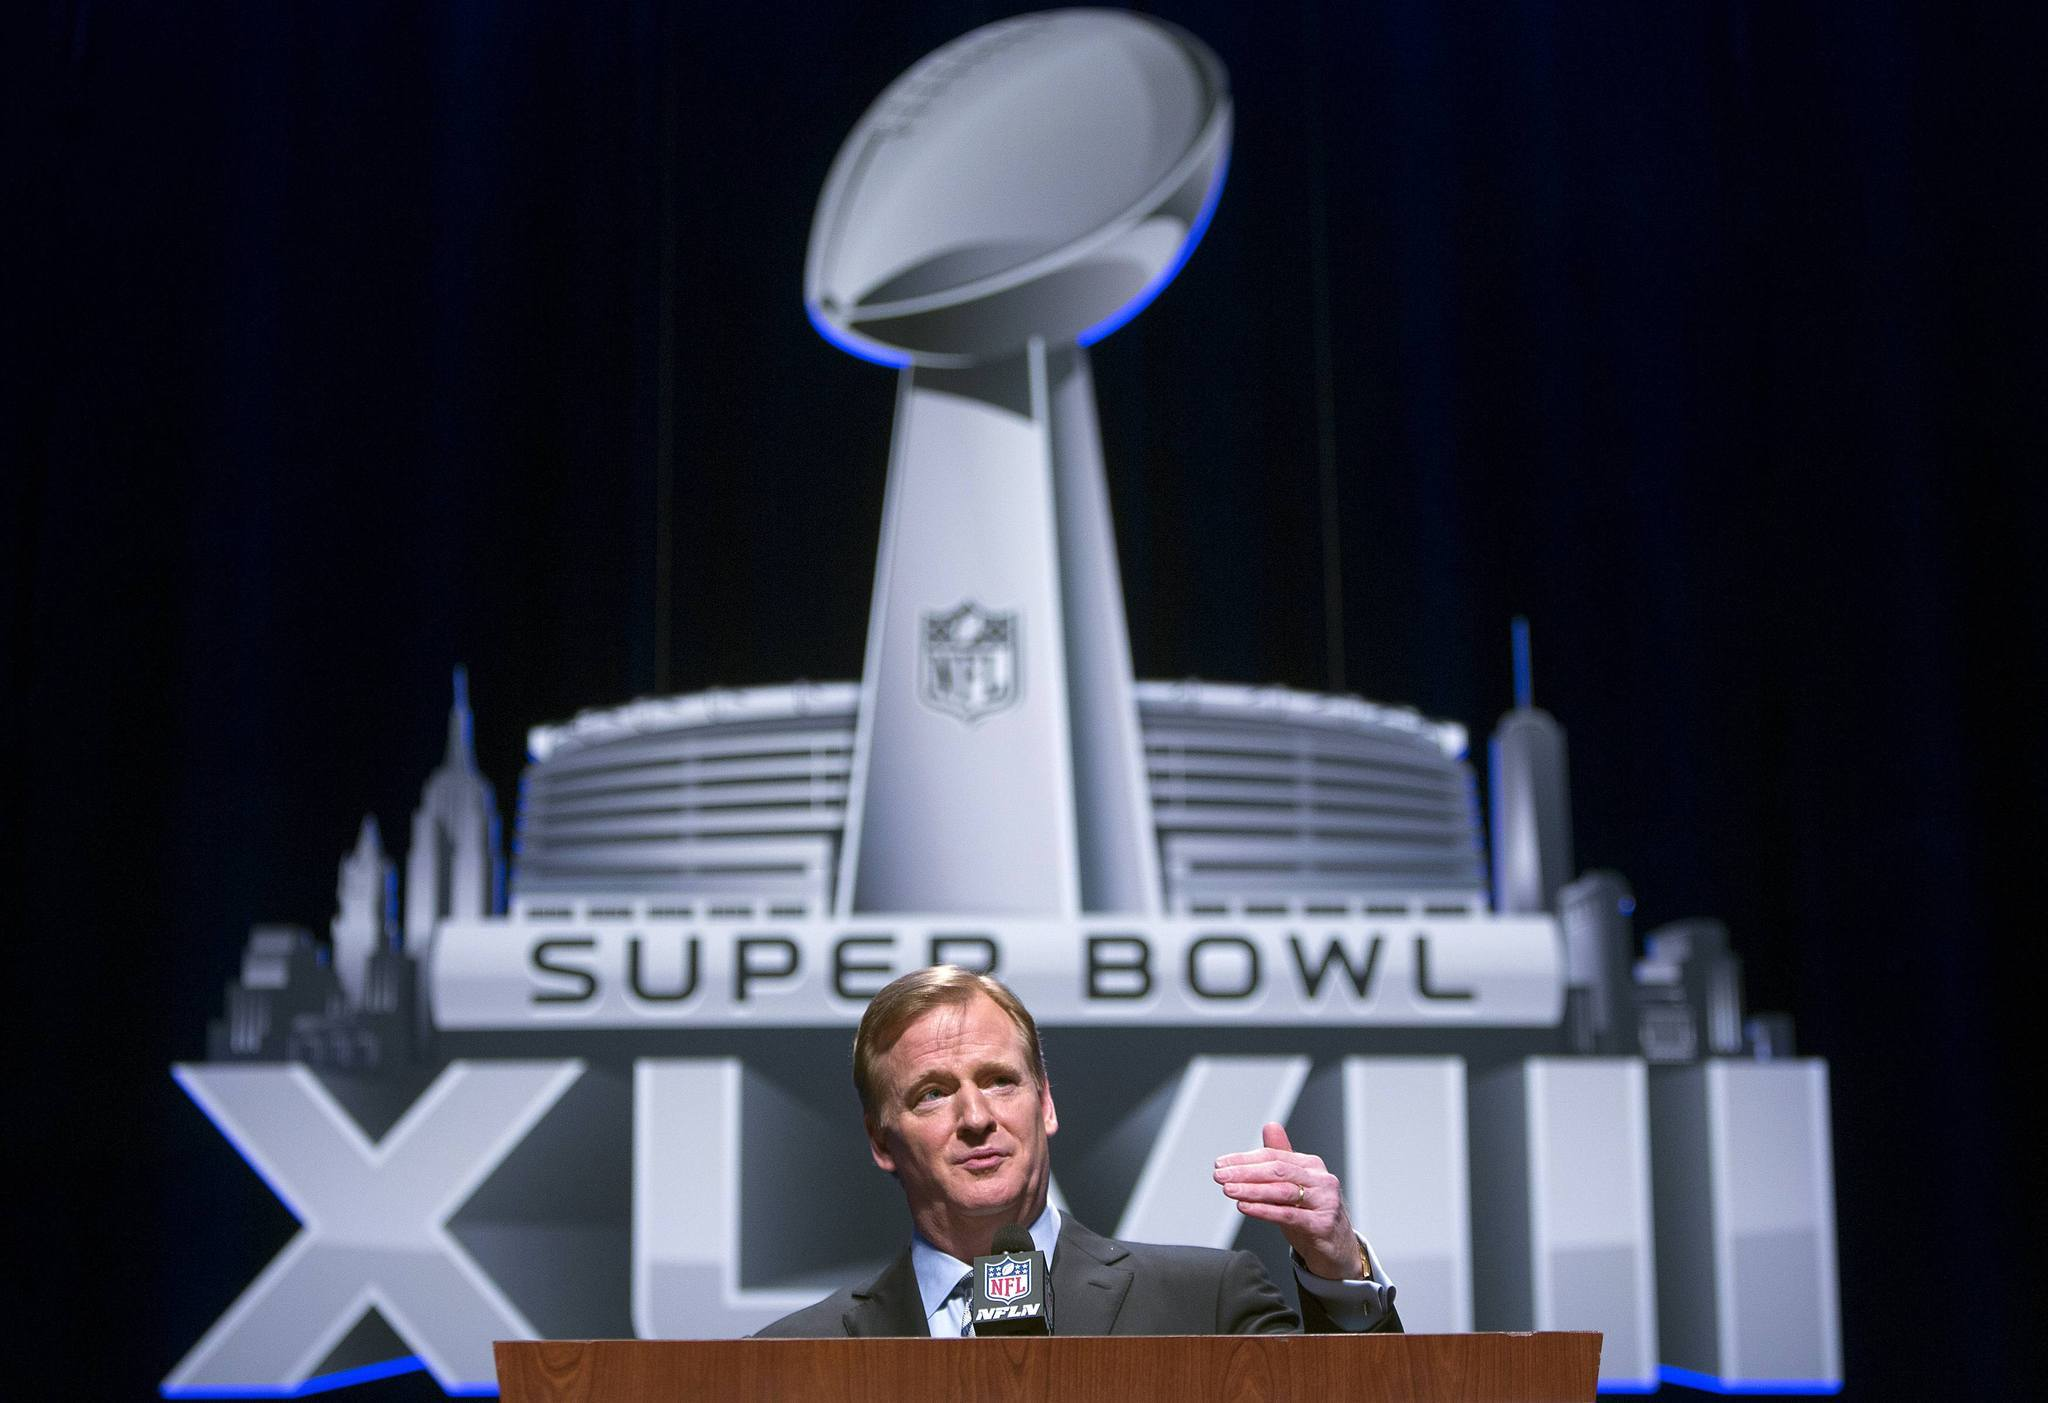 NFL Commissioner Roger Goodell speaks during a news conference ahead of the Super Bowl, in New York on Jan. 31